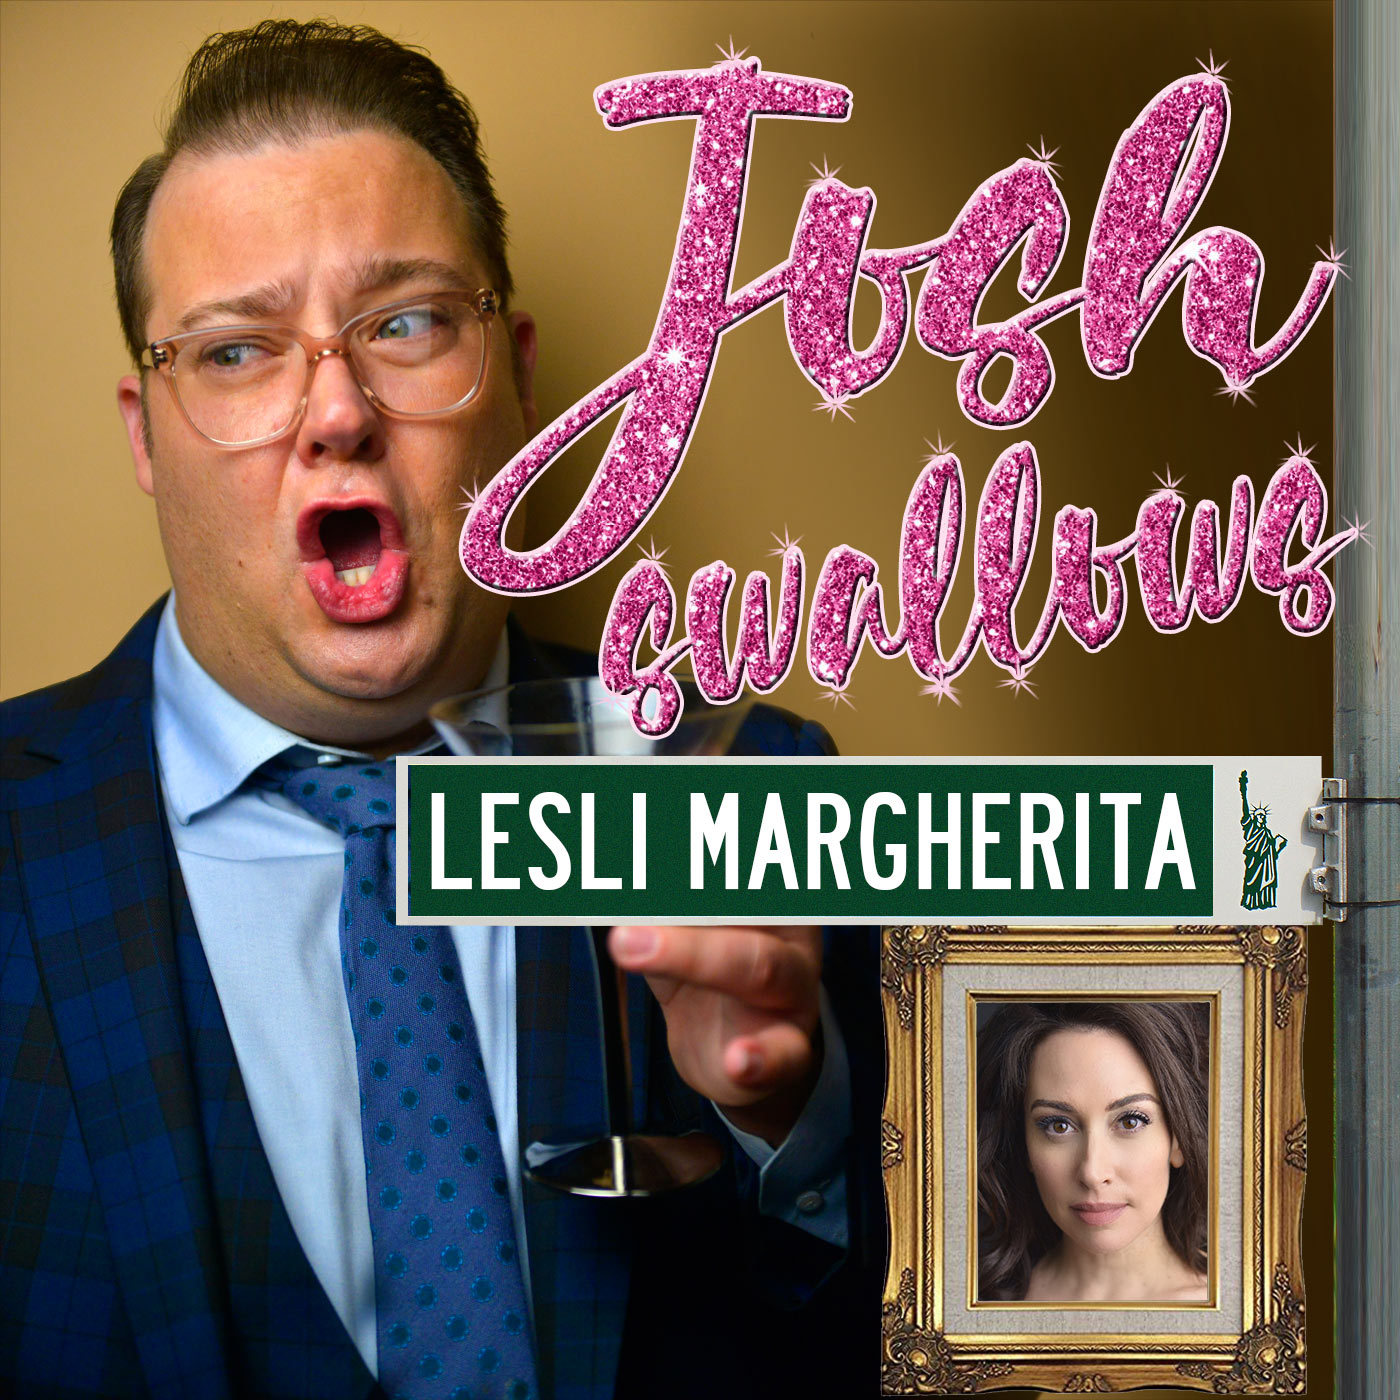 Josh Swallows Broadway Ep16 - Lesli Margherita, the grand-poobah of all theatre